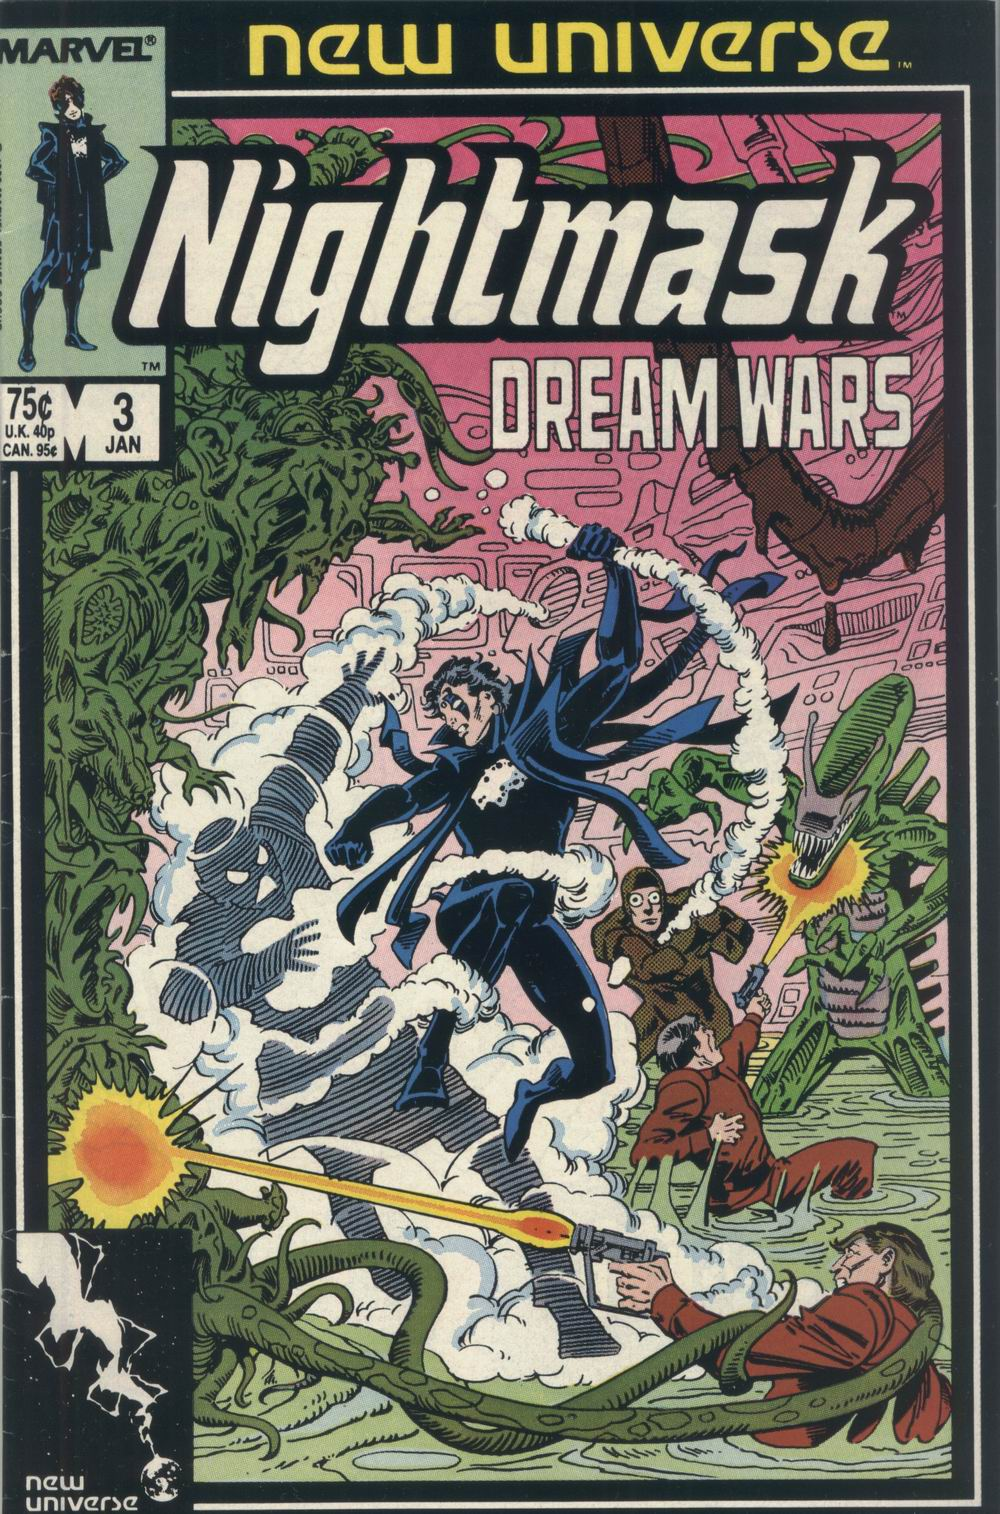 Nightmask (1986) #3, written by Cary Bates. Cover by Al Milgrom.